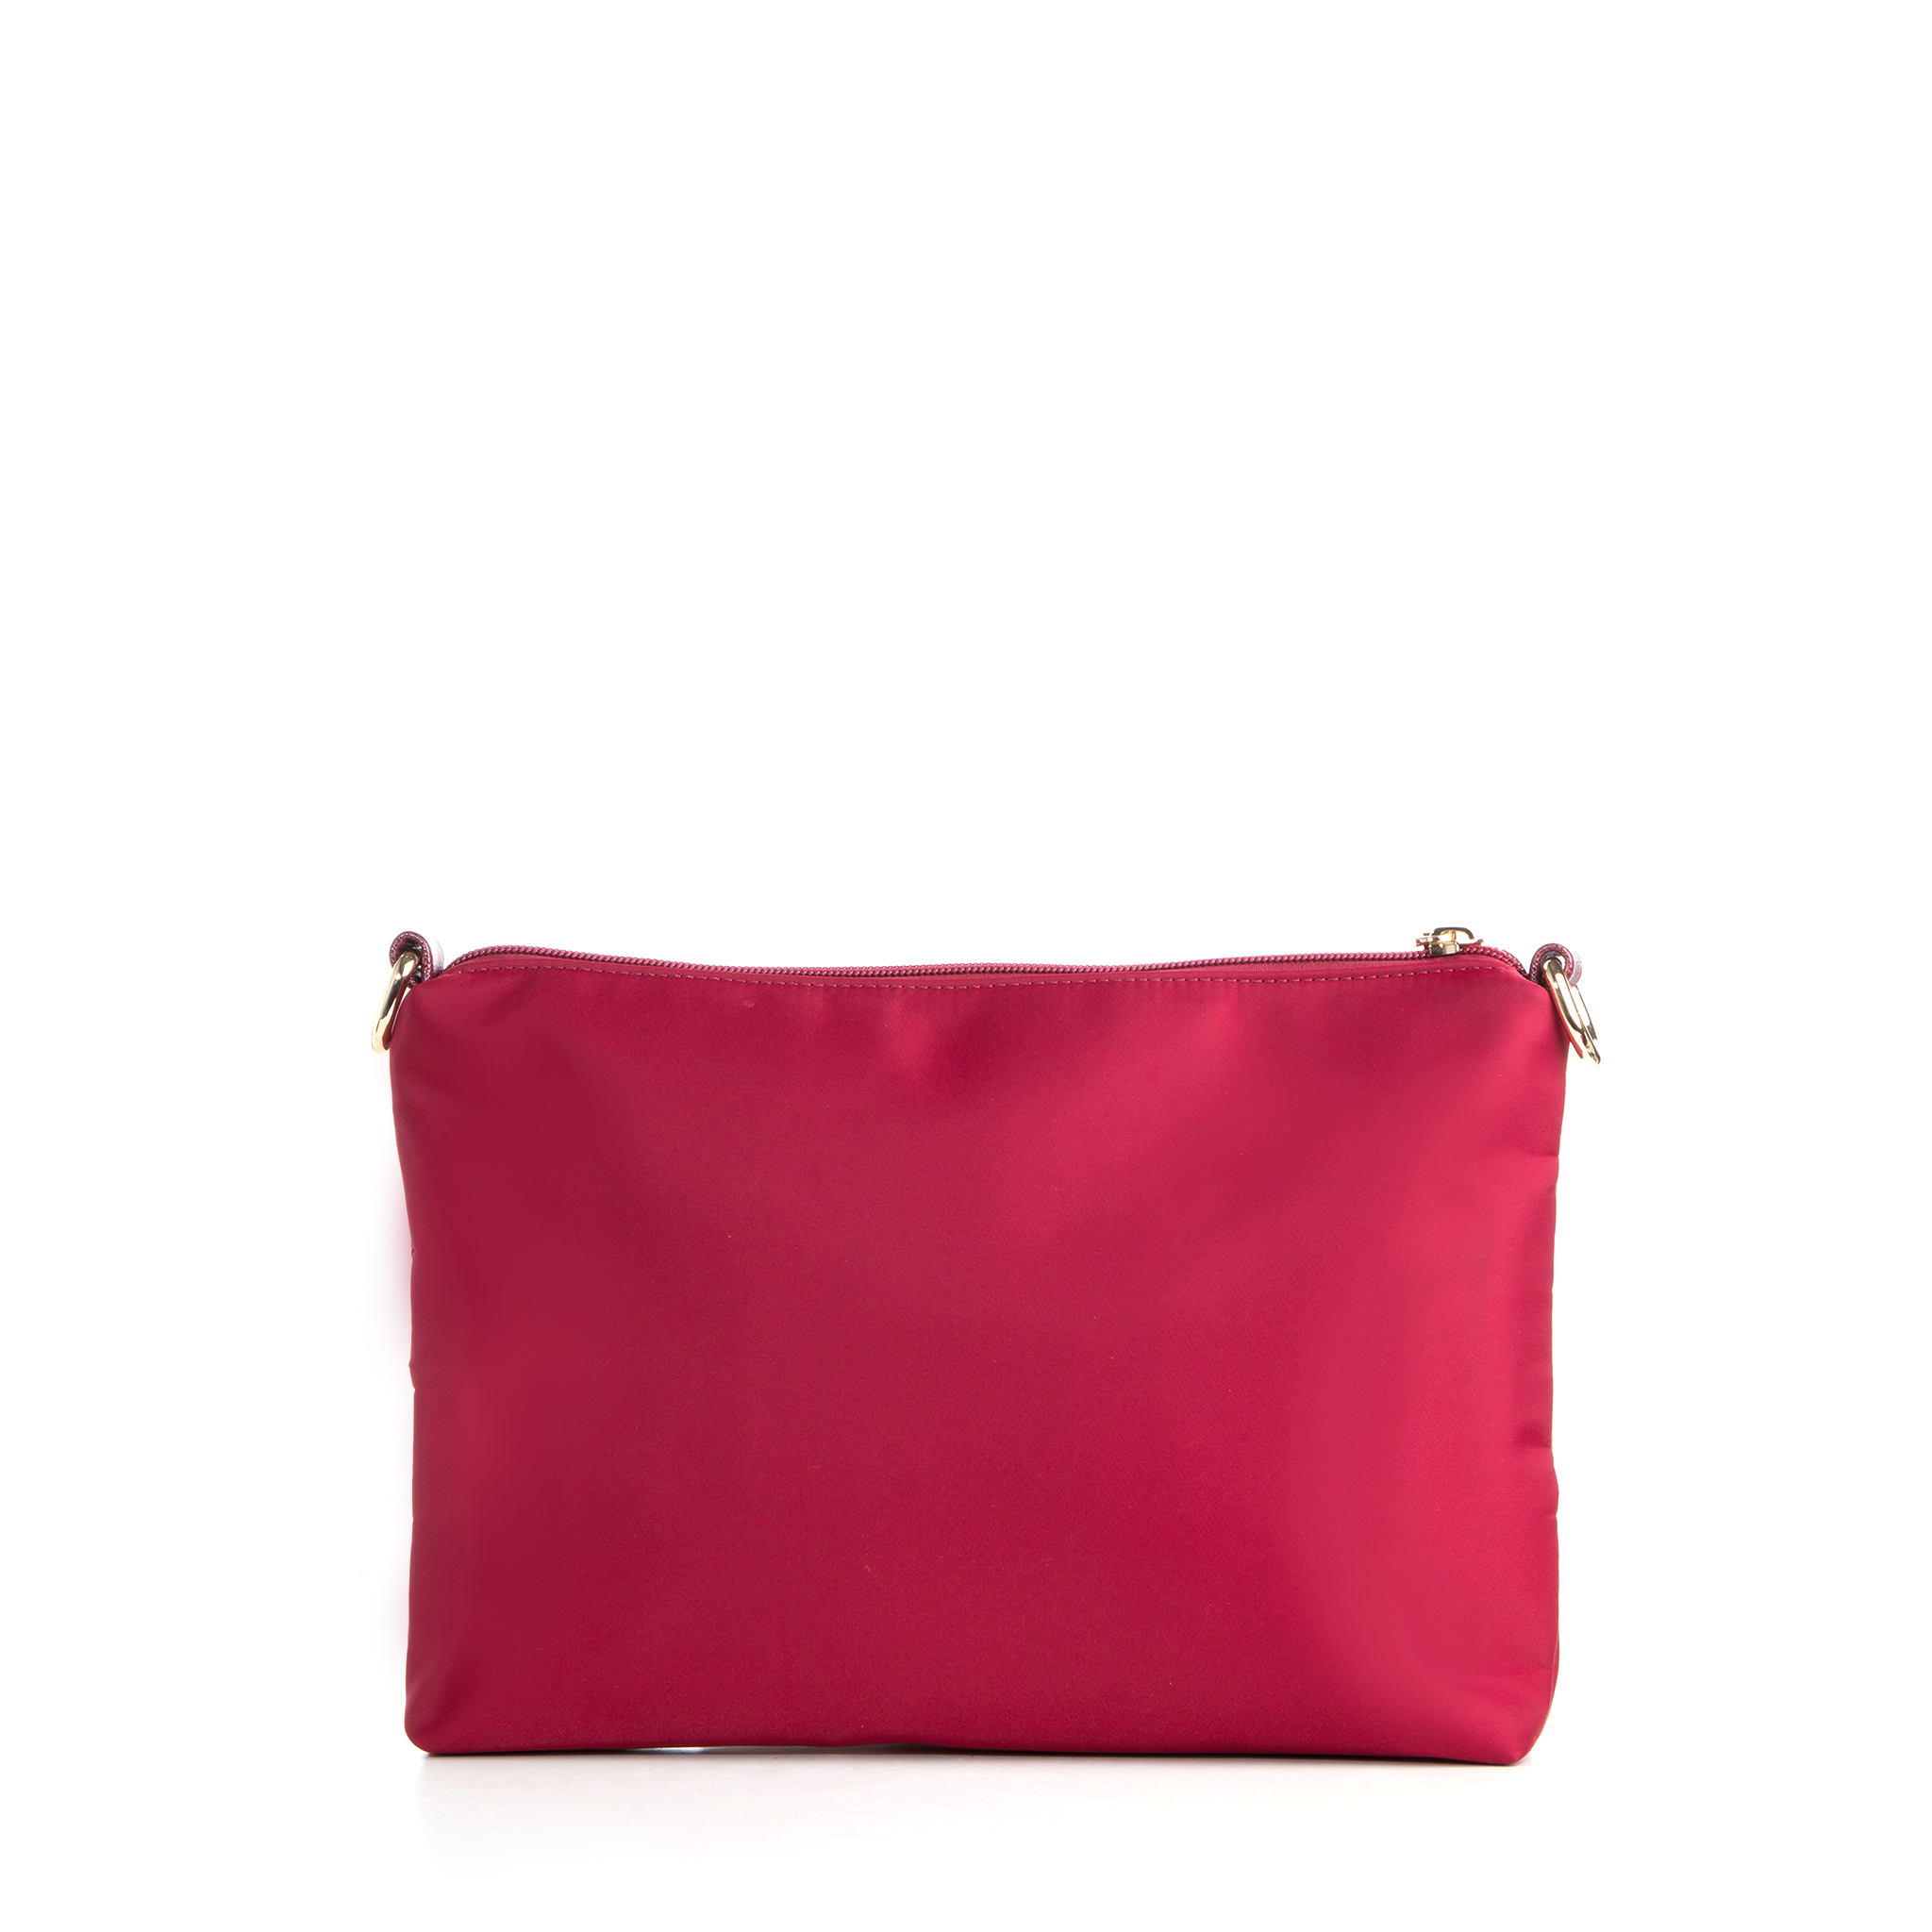 On the Go 'Lipstick Red' 4-in-1 Bag by DAZZ